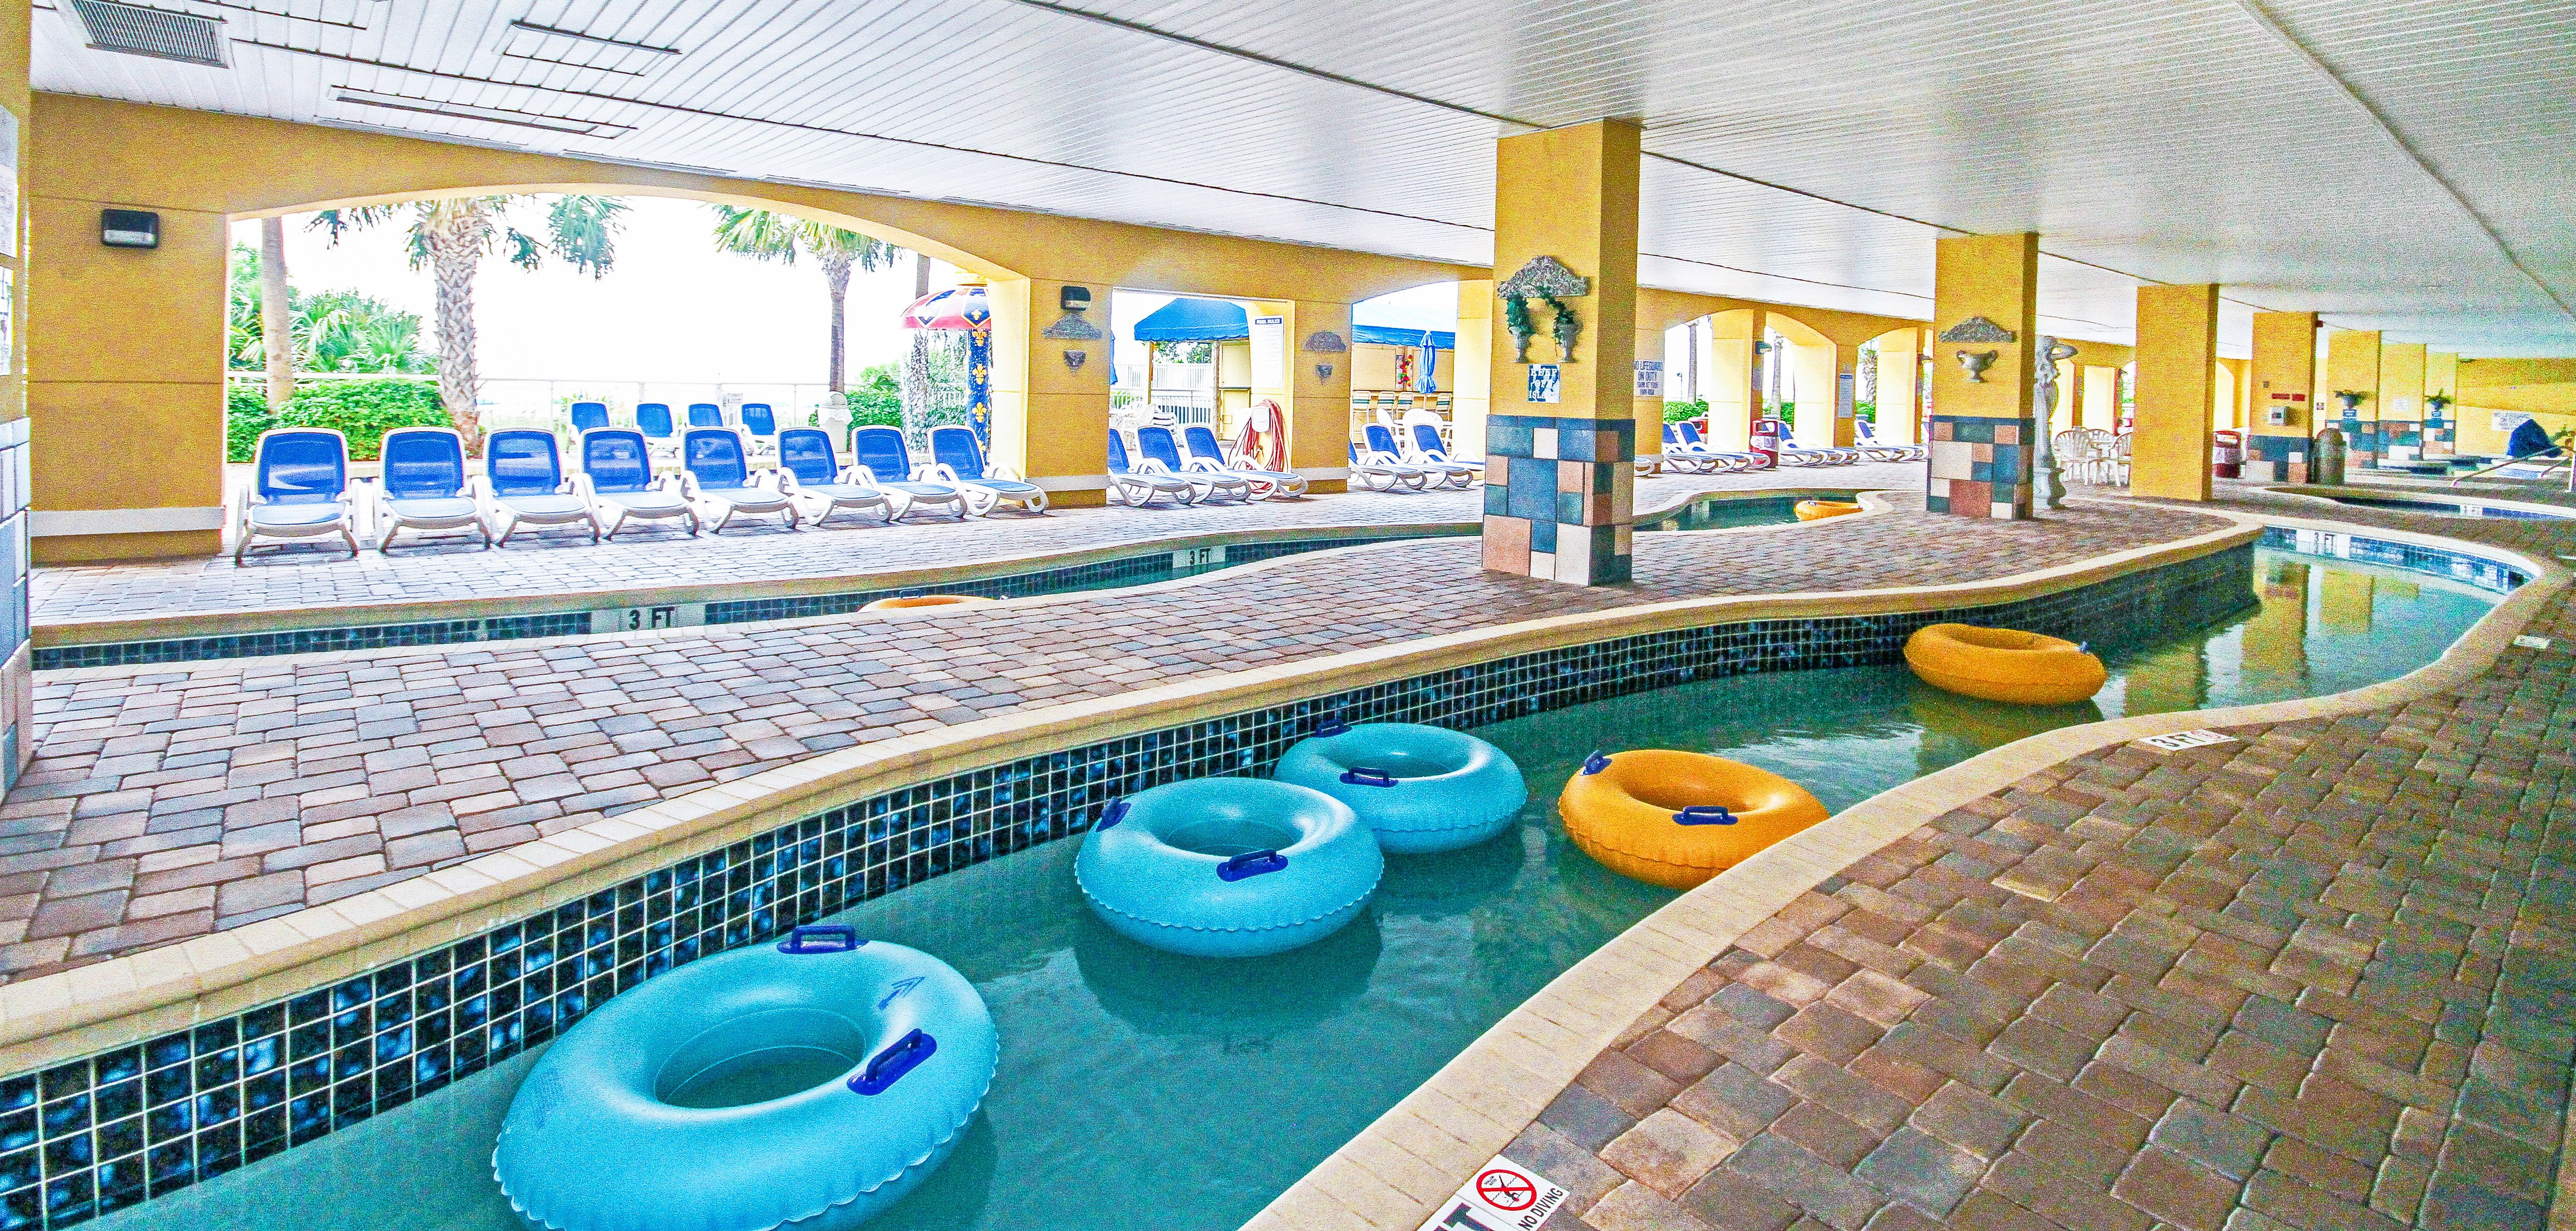 Covered Lazy River At Camelot By The Sea Myrtle Beach Resorts Myrtle Beach Lazy River Pool